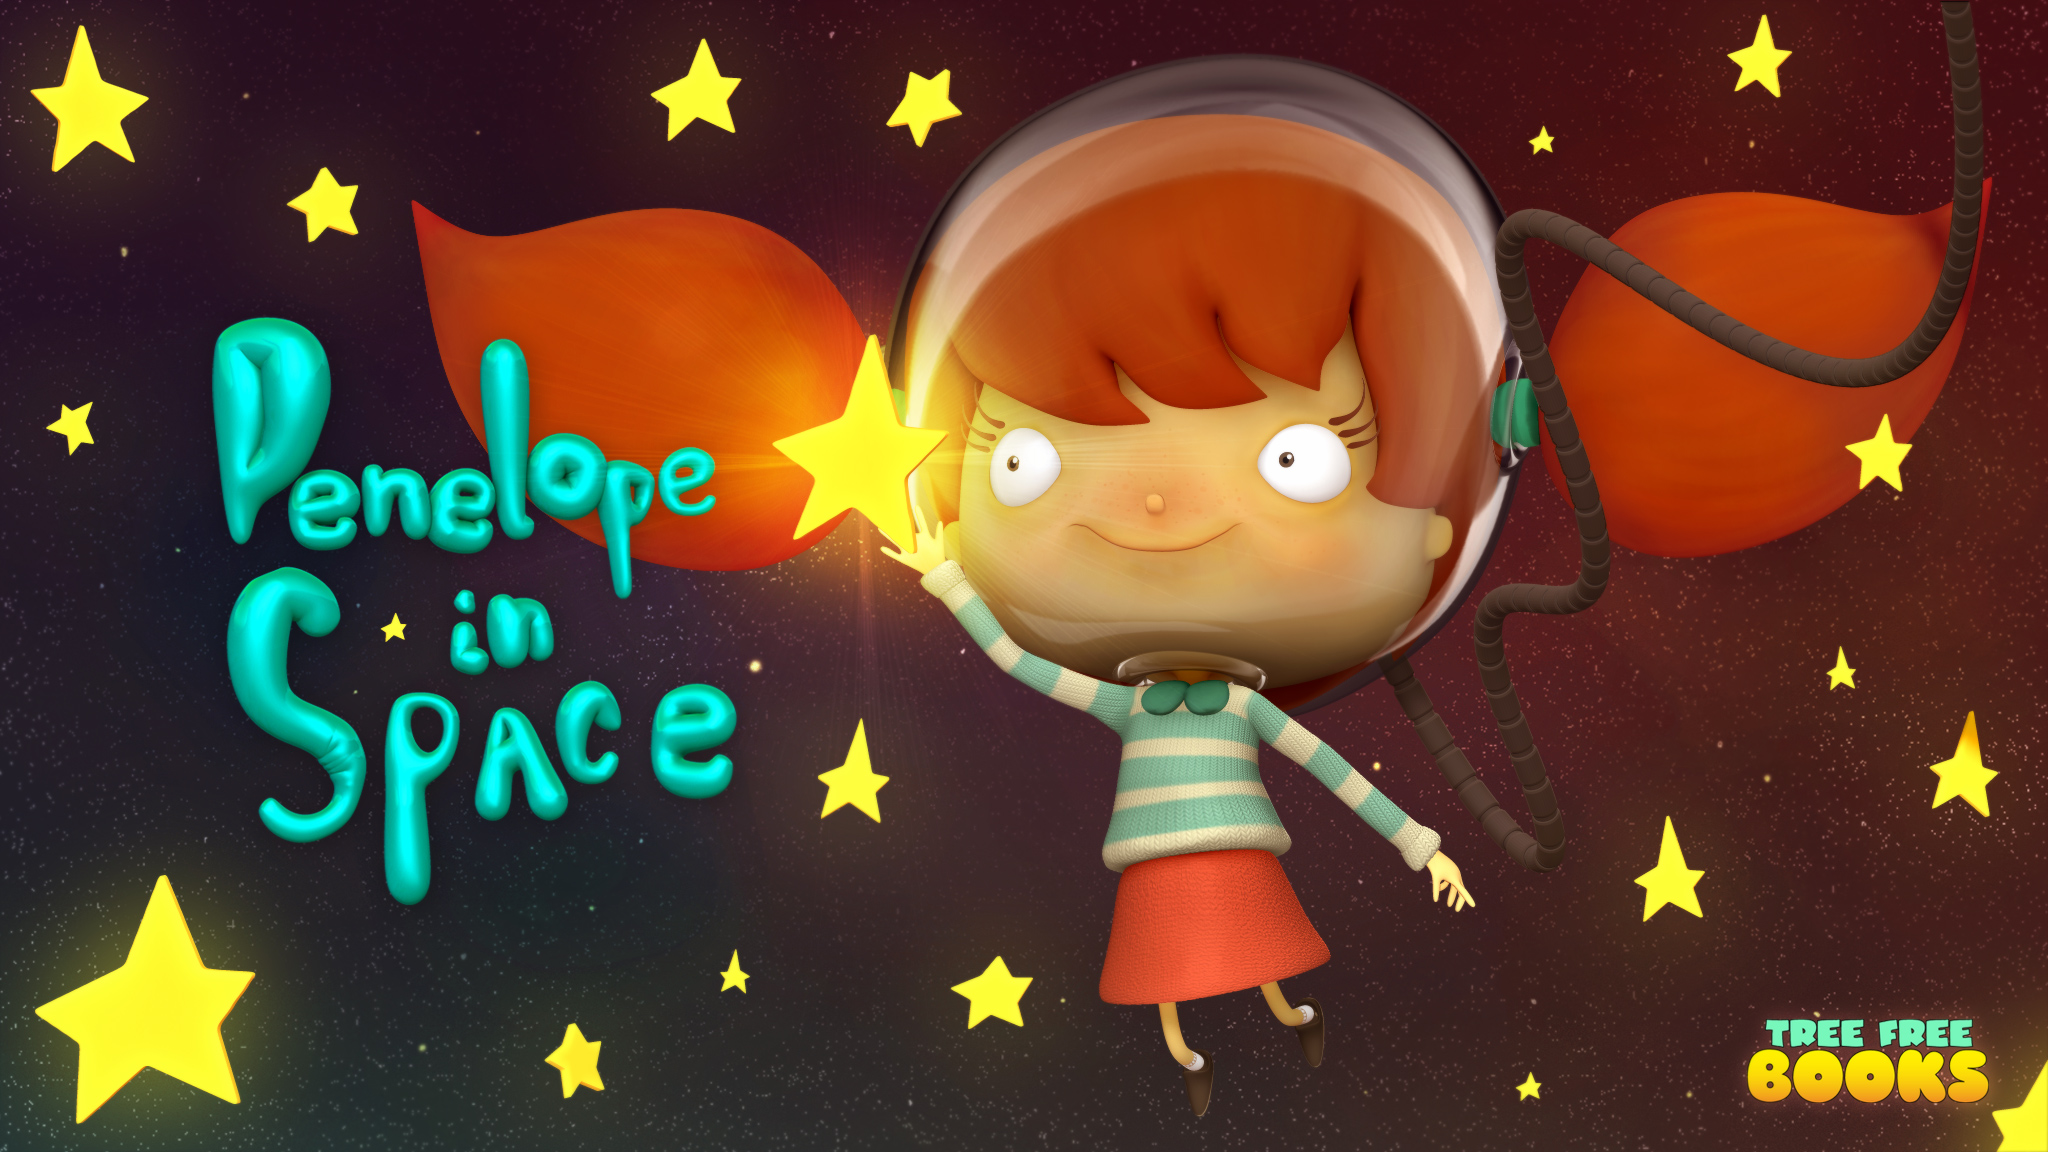 Penelope in space